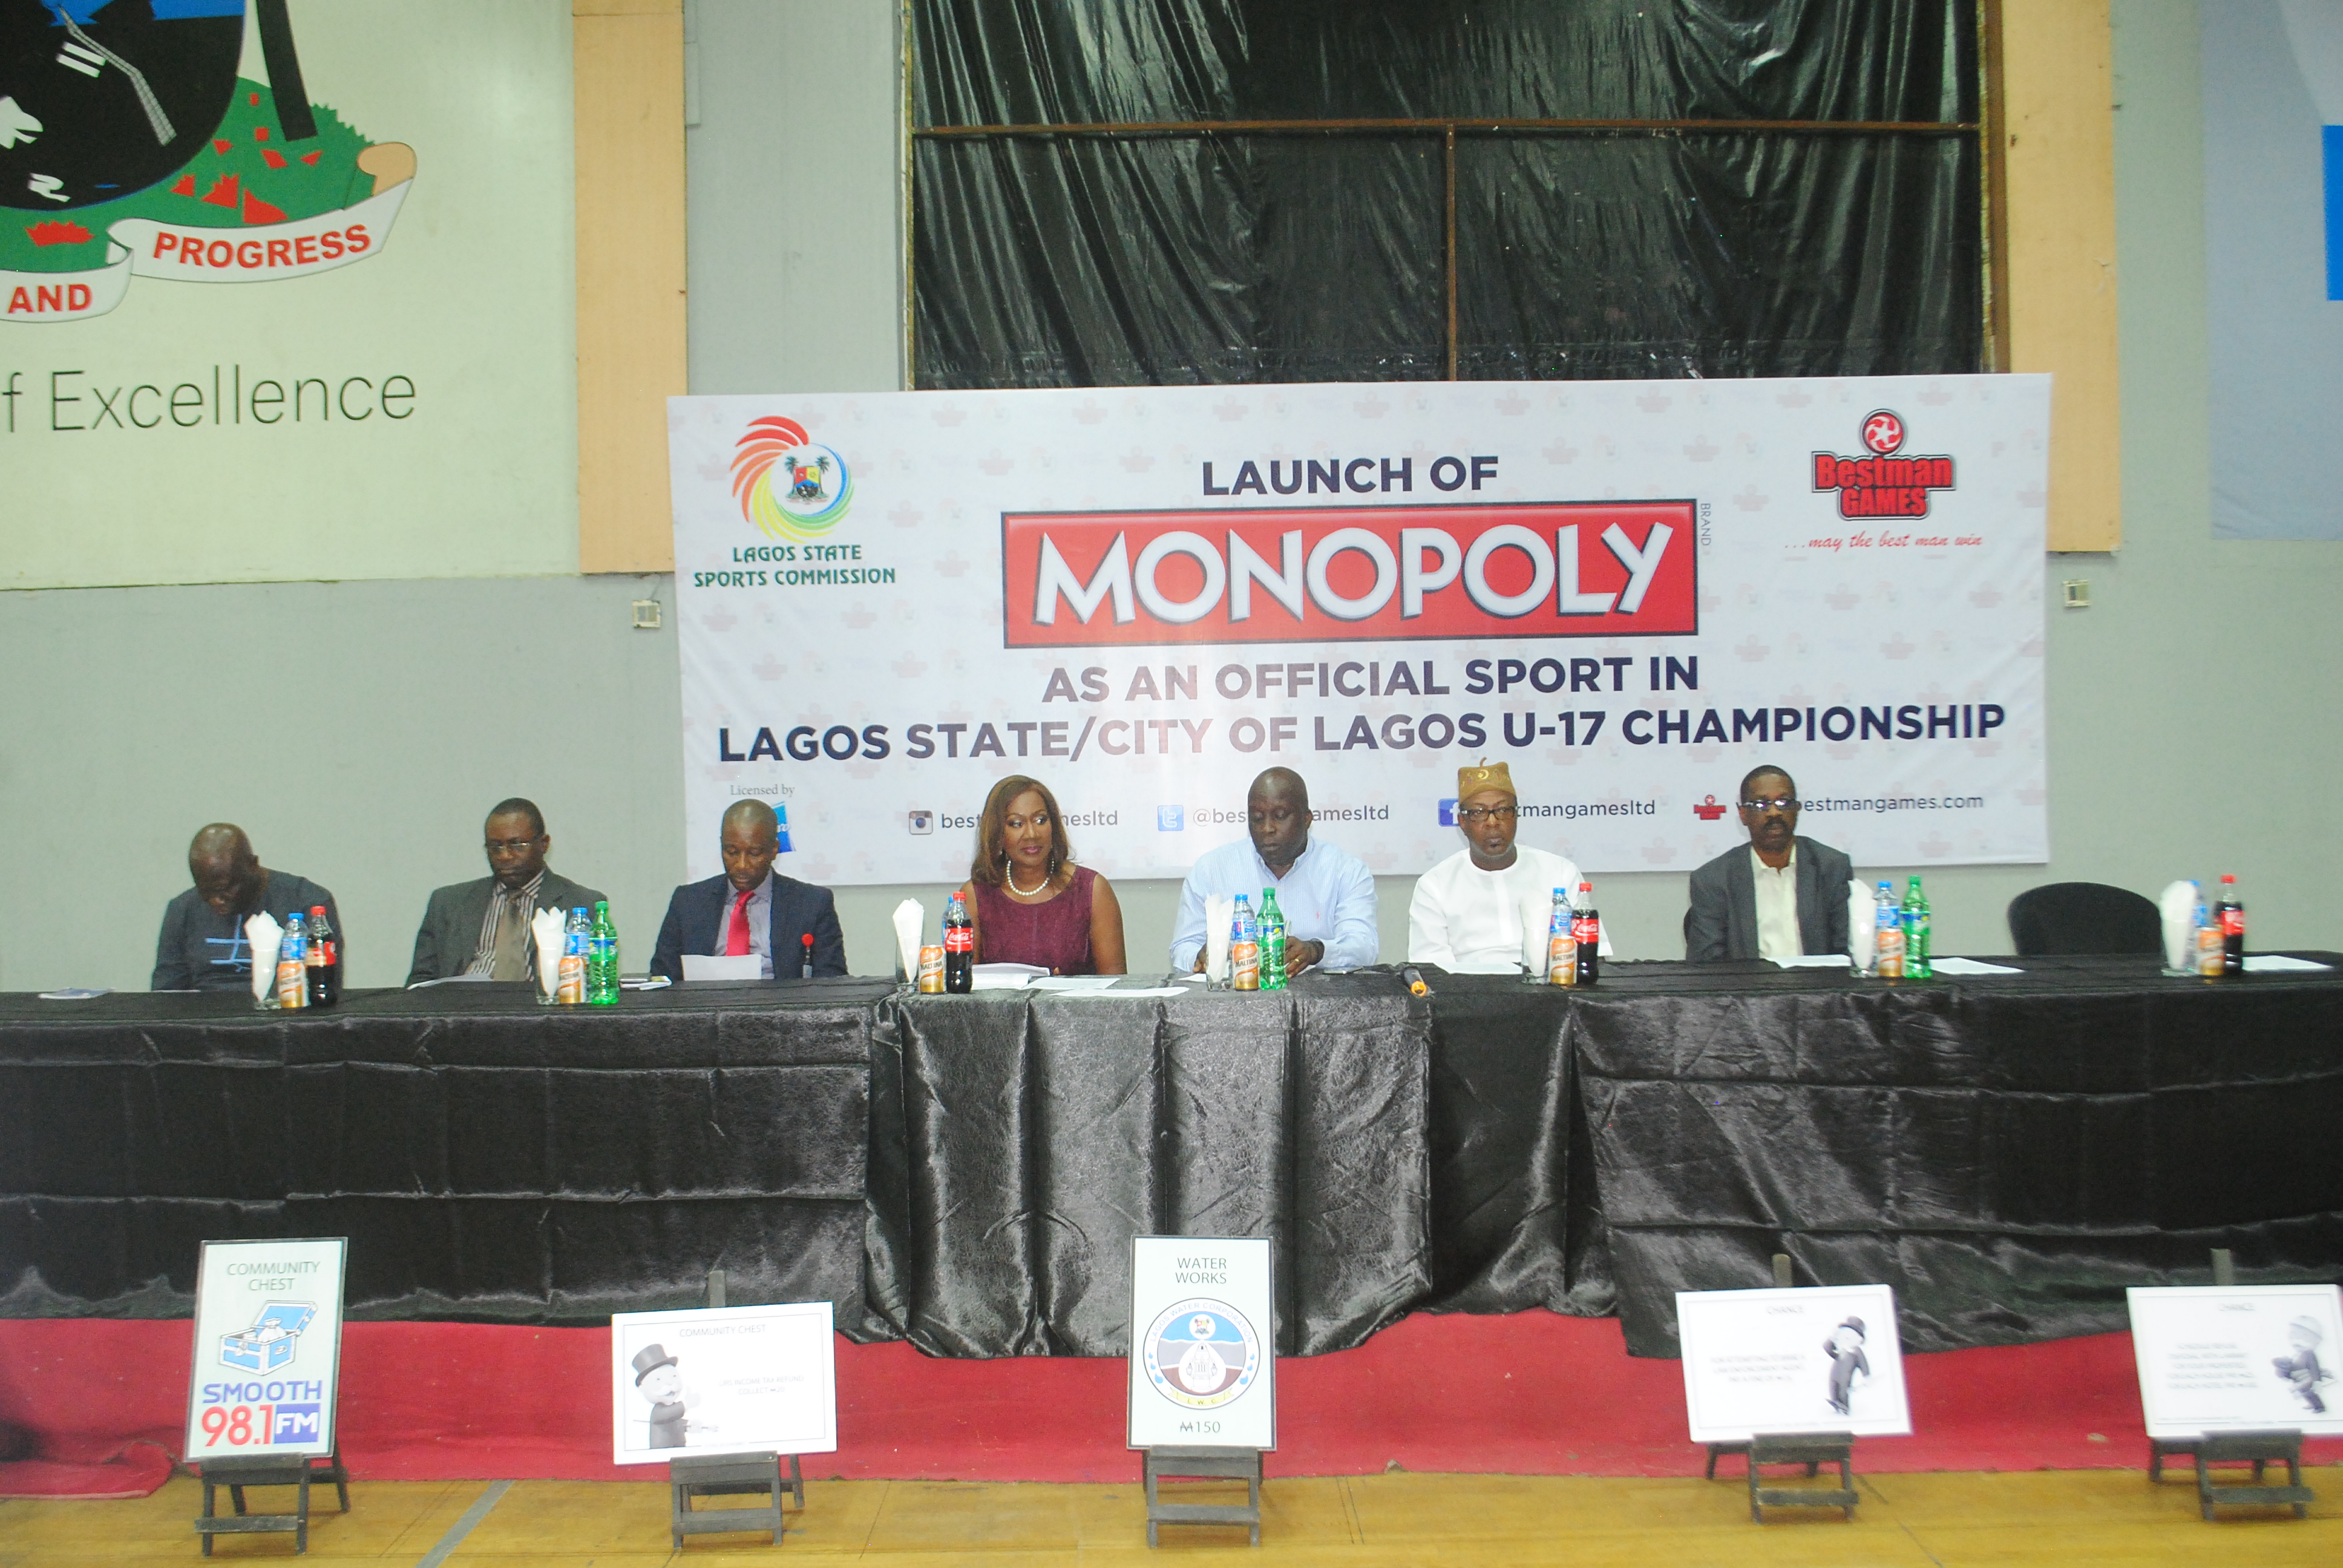 Launch of Monopoly as an Official Sport of Lagos State, Teslim Balogun Stadium, Lagos